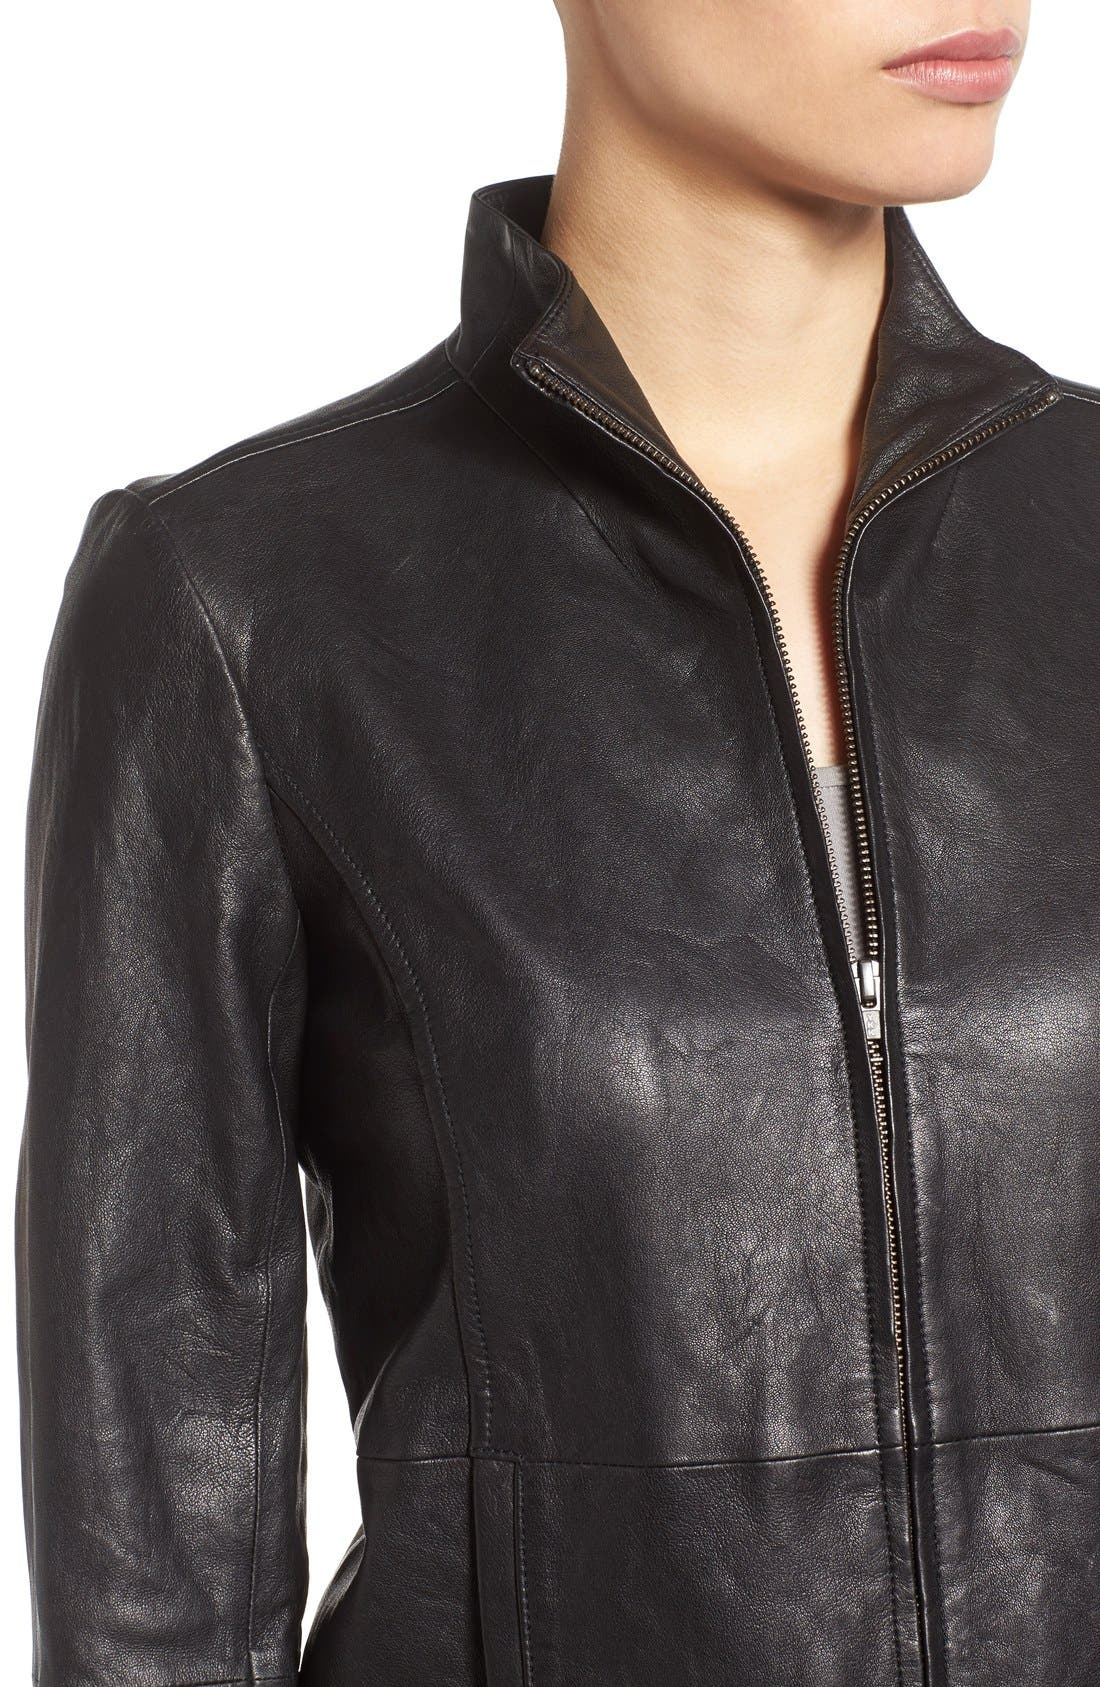 Rumpled Luxe Leather Stand Collar Jacket,                             Alternate thumbnail 4, color,                             Black